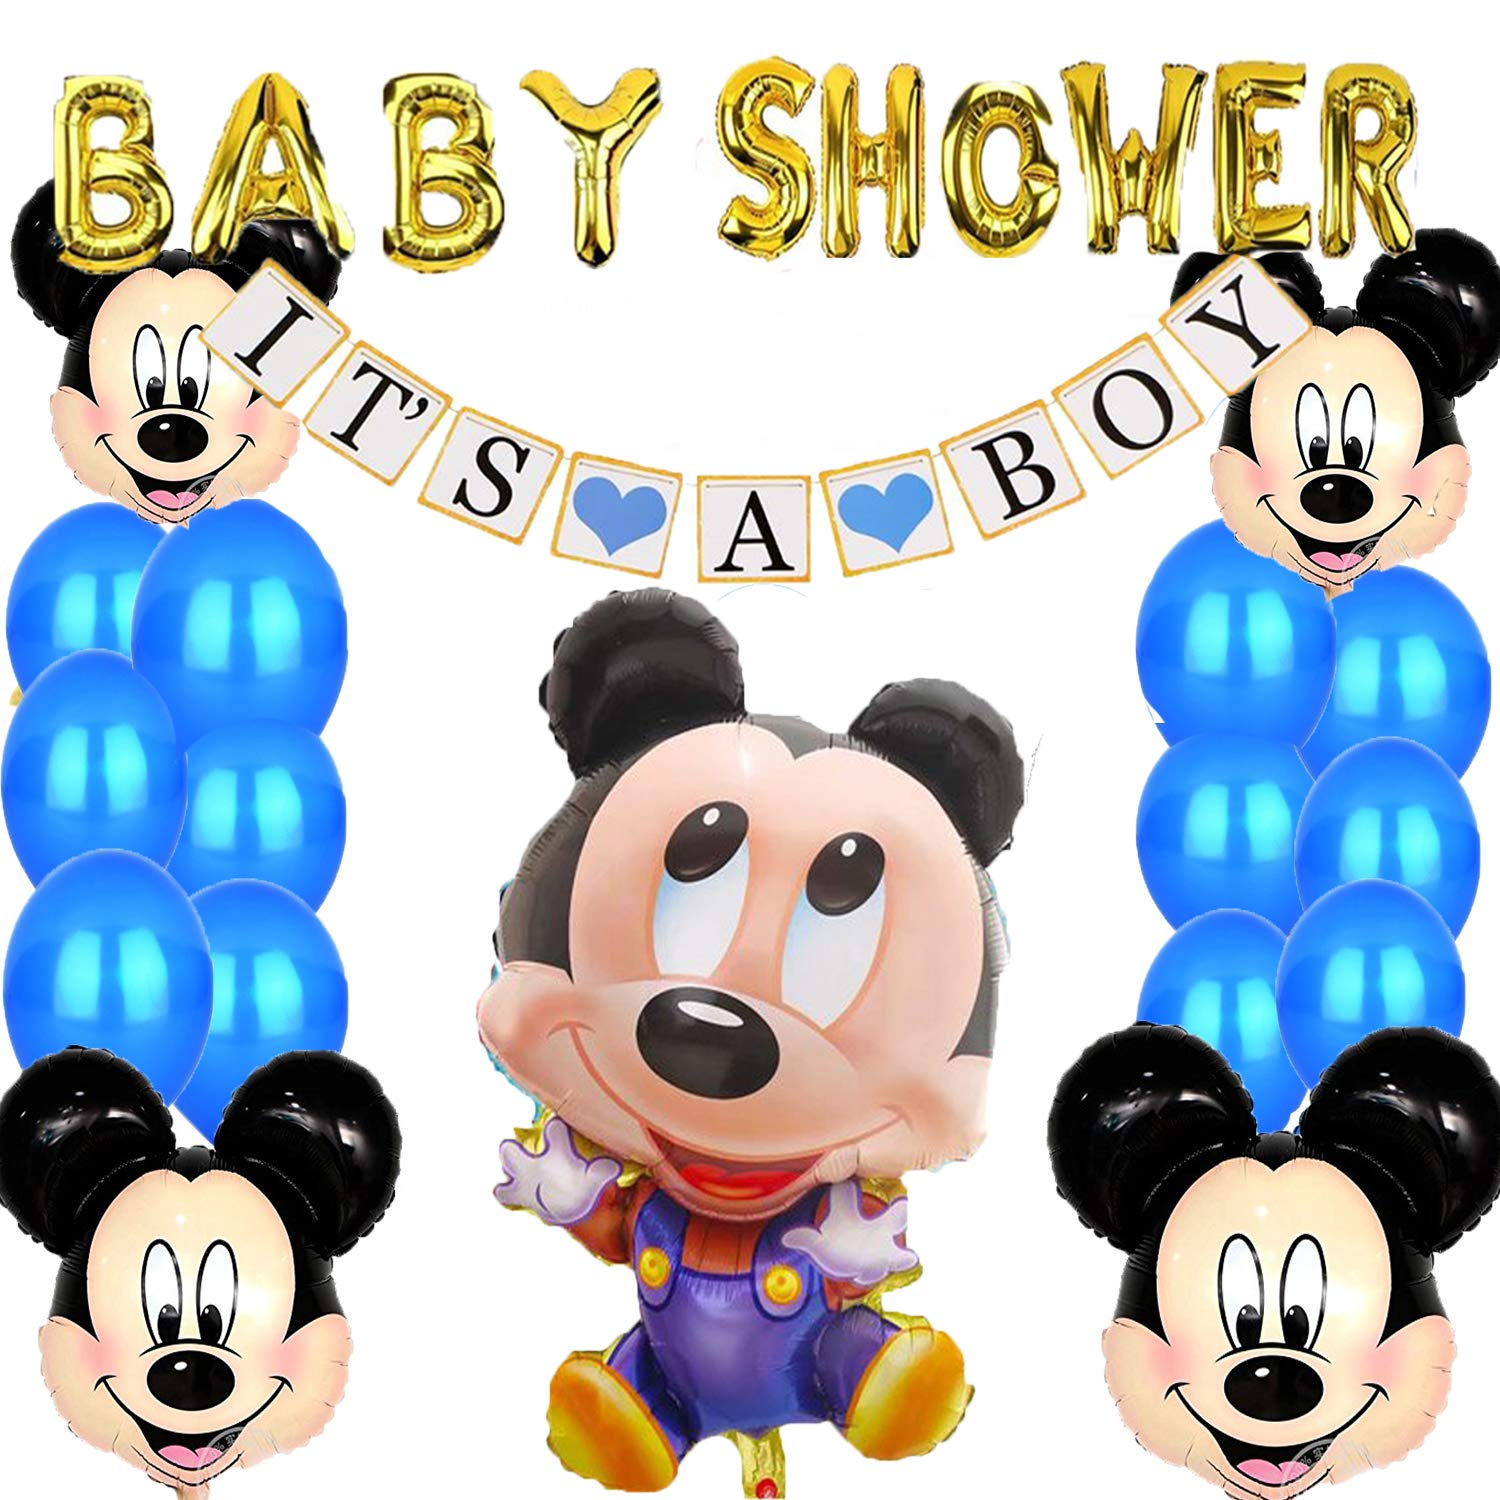 Mickey Mouse Baby Shower Decorations  from m.media-amazon.com